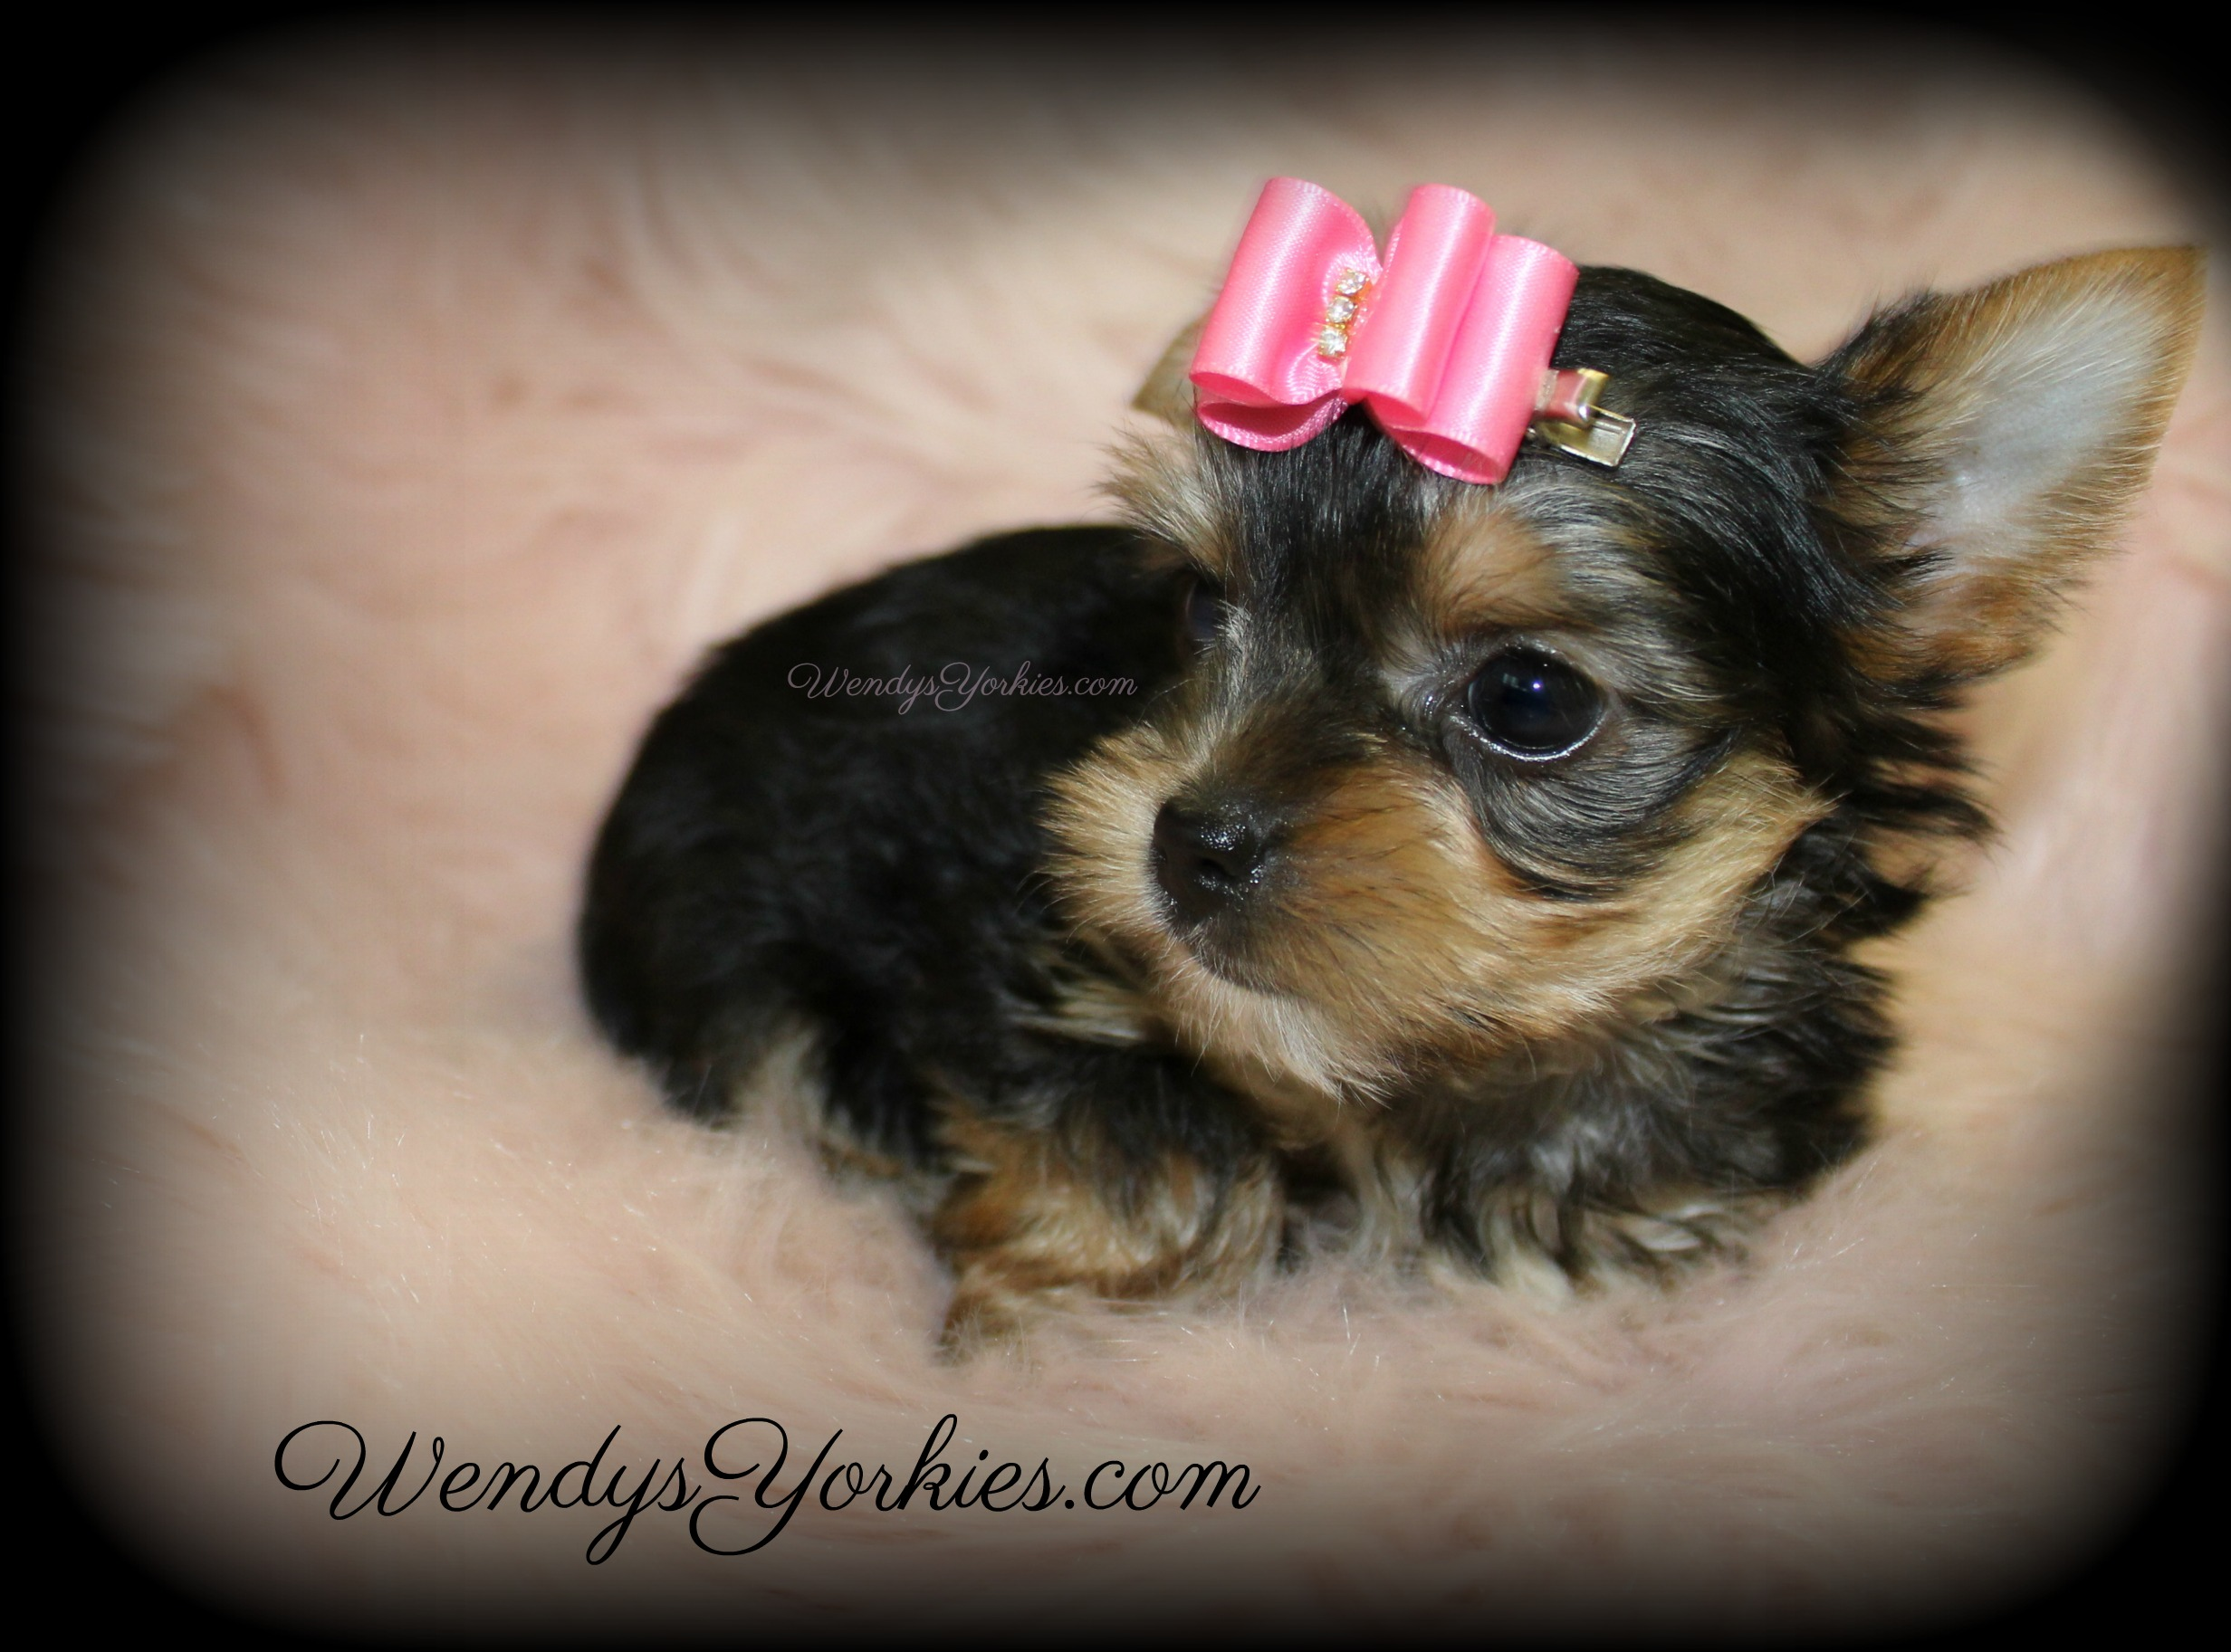 Tiny Teacup Female Yorkie puppies for sale, WendysYorkies.com, Loulou f3